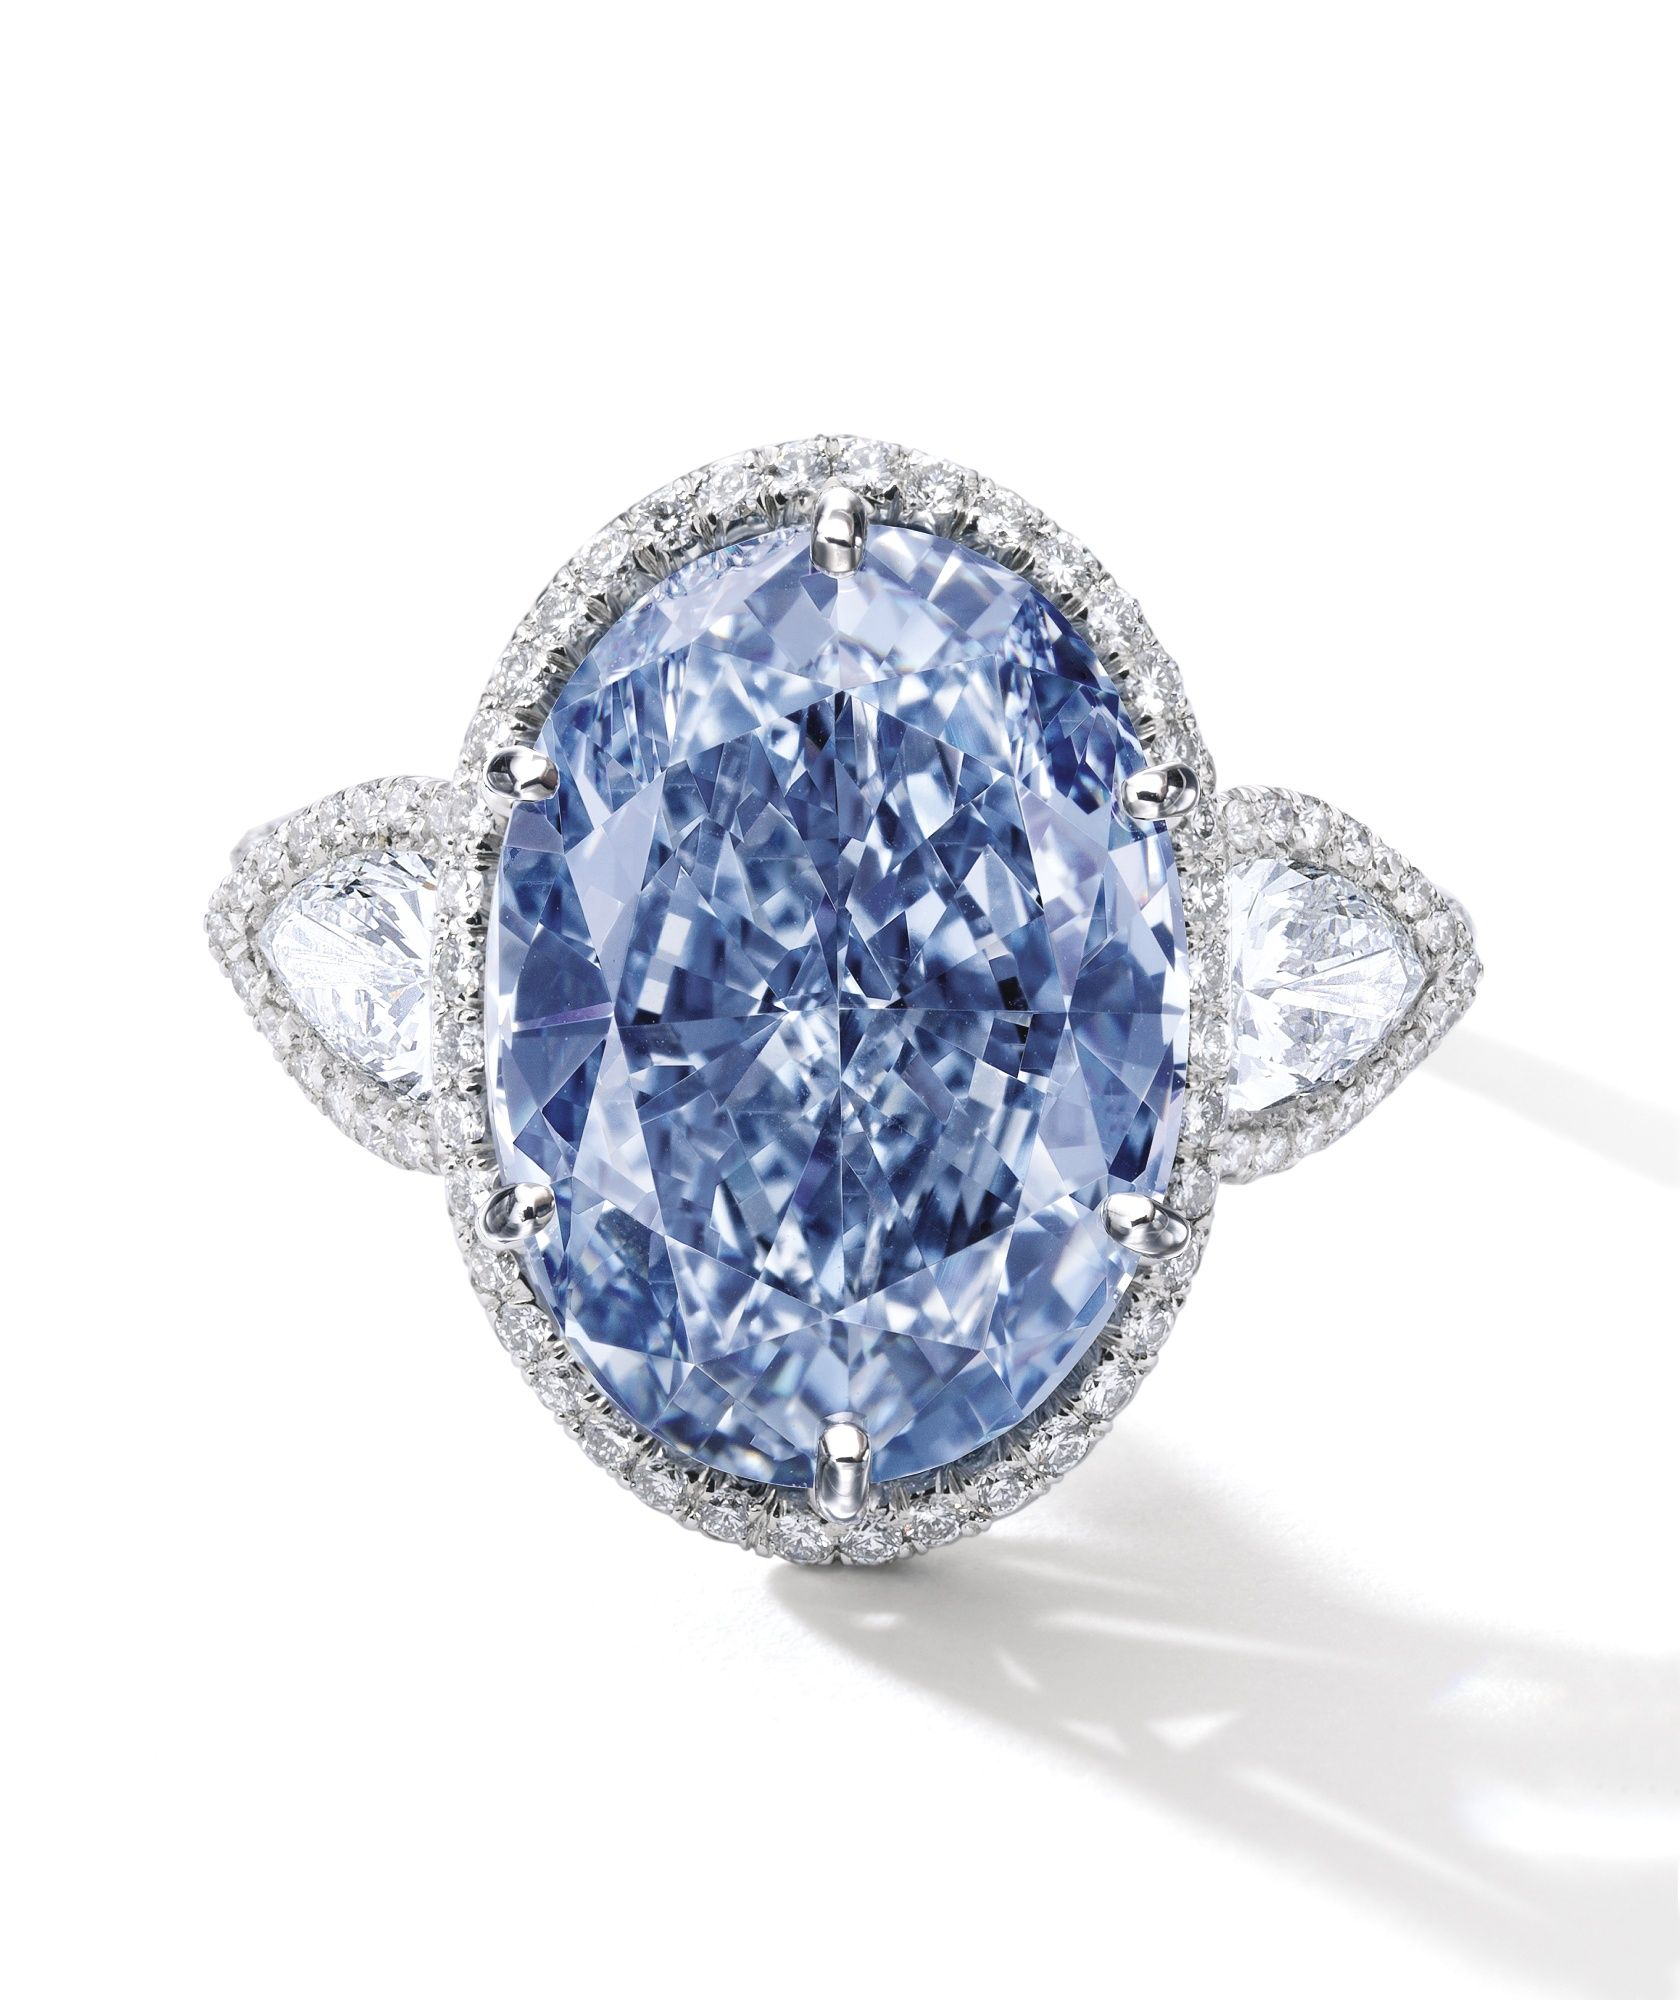 Superb and Rare Fancy Vivid Blue Diamond and Diamond Ring Set with